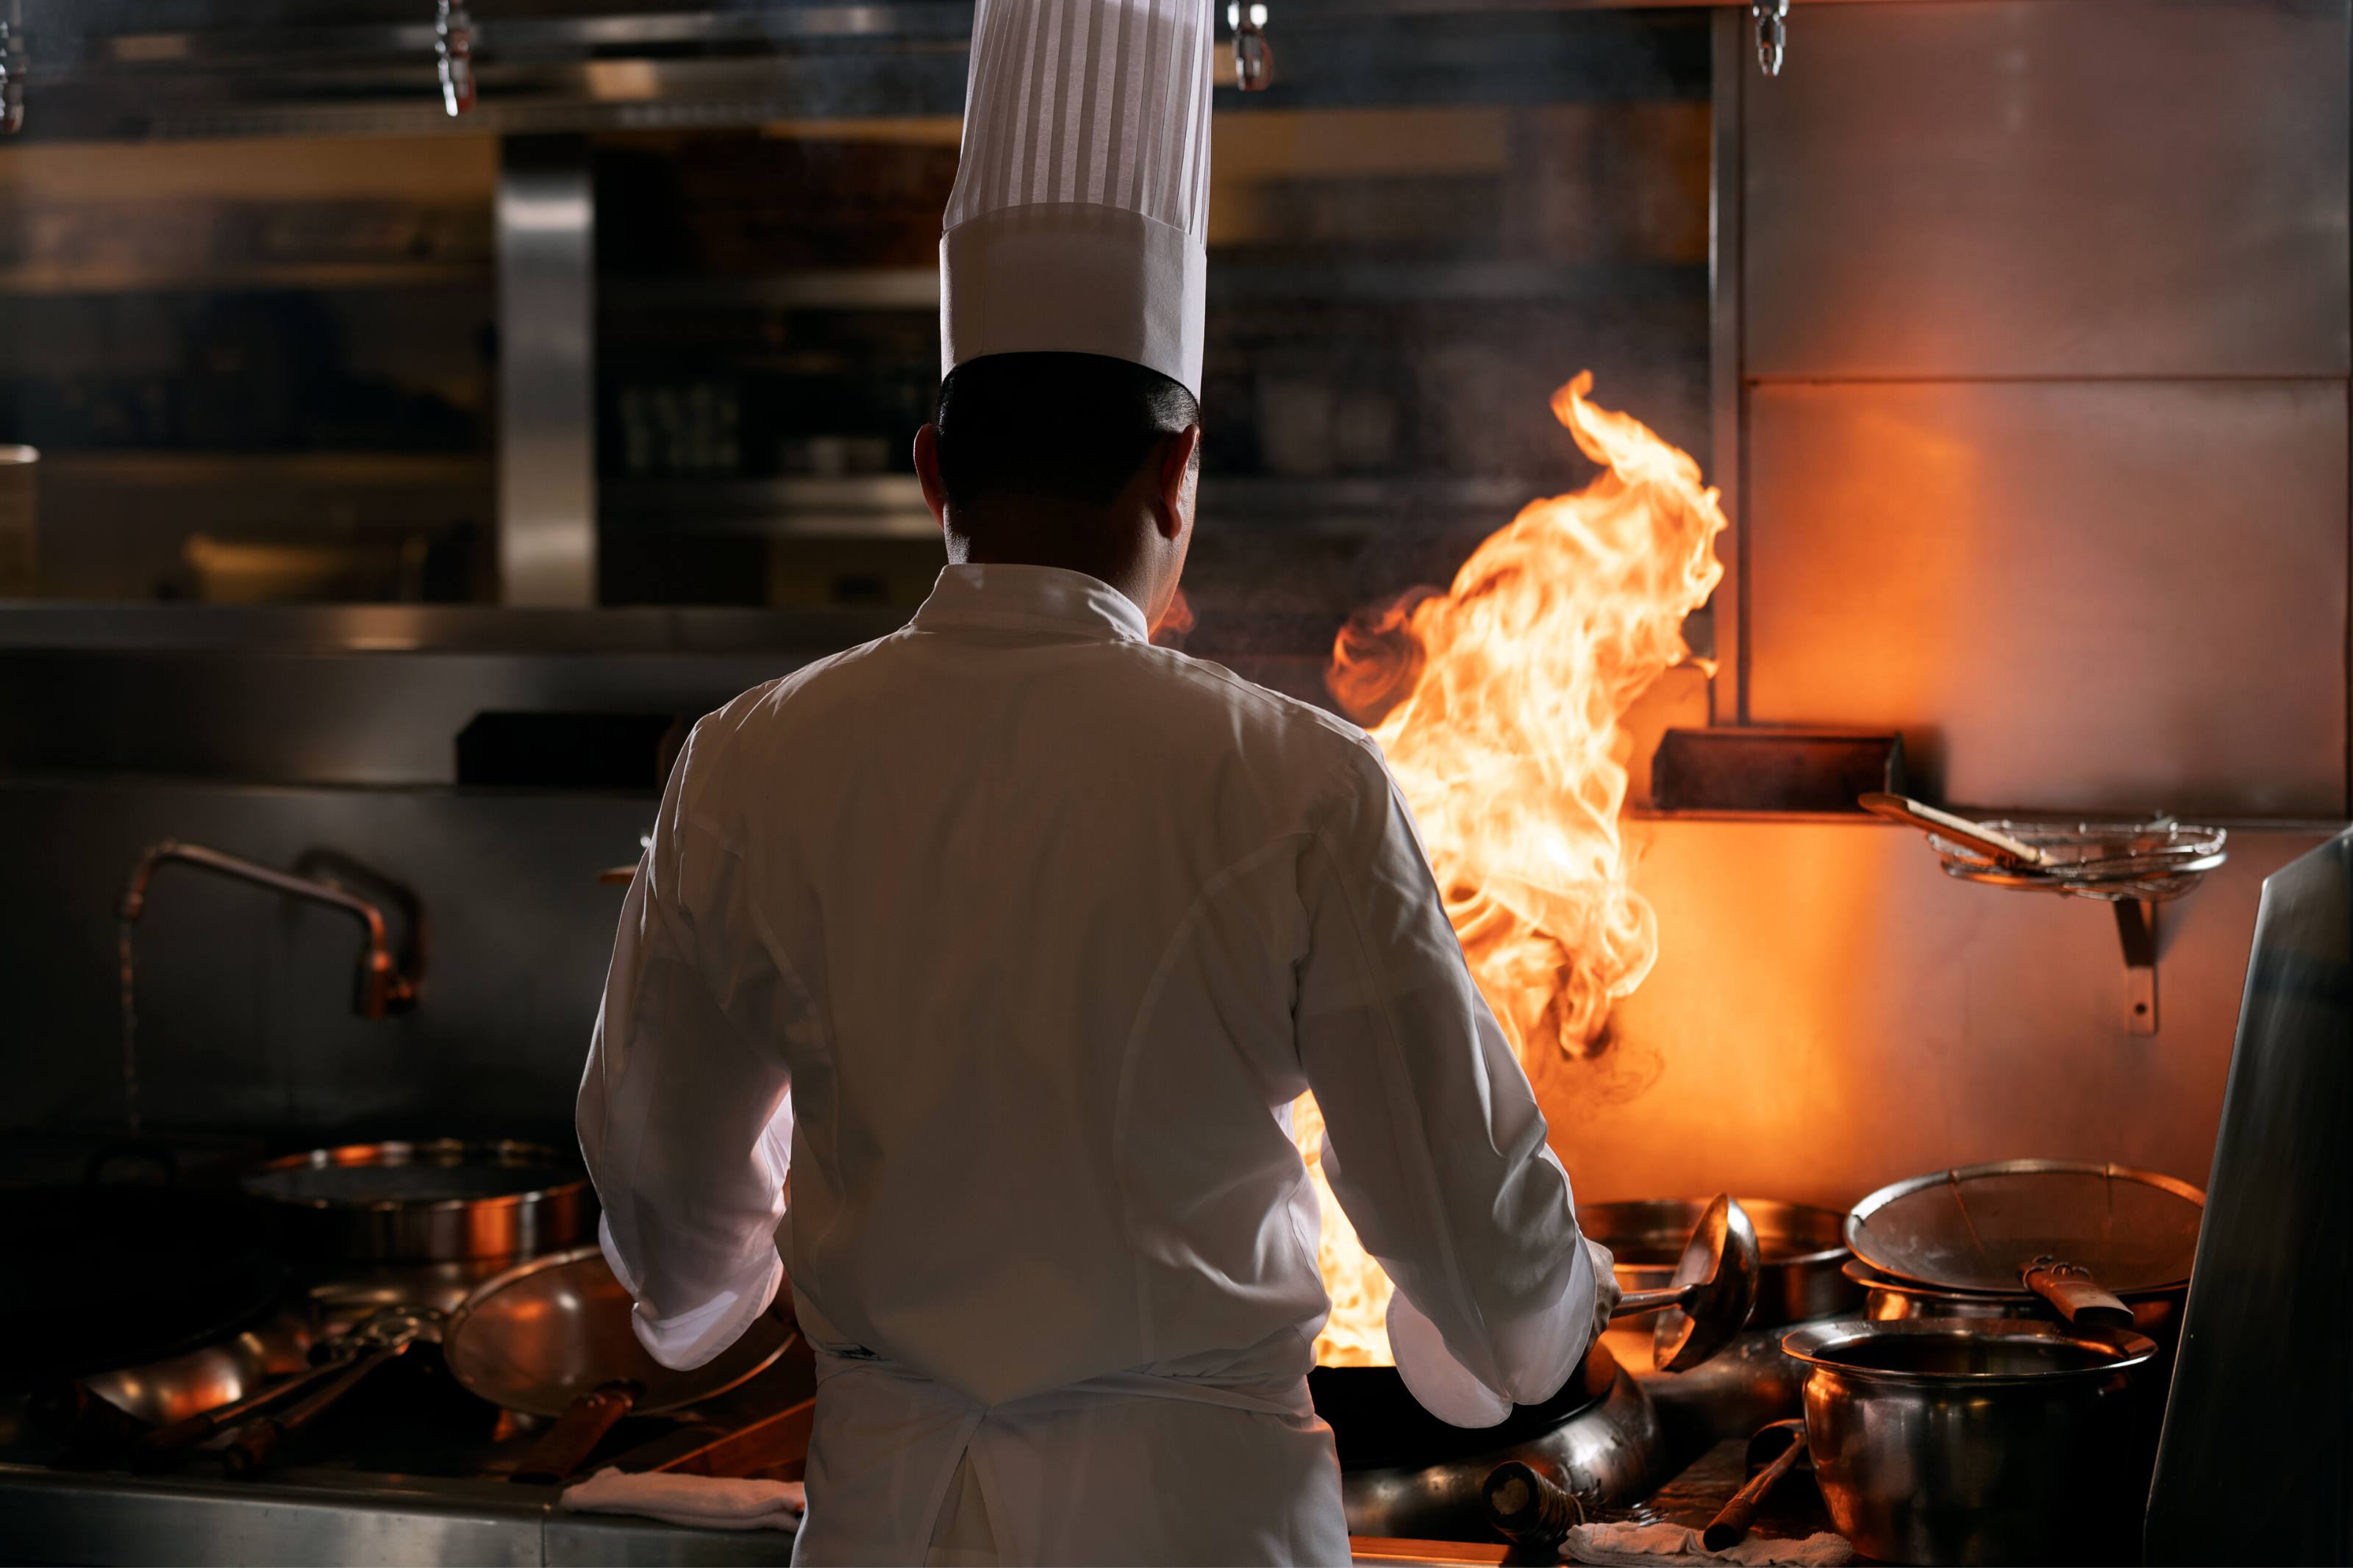 Chef standing in front of the flame of the wok